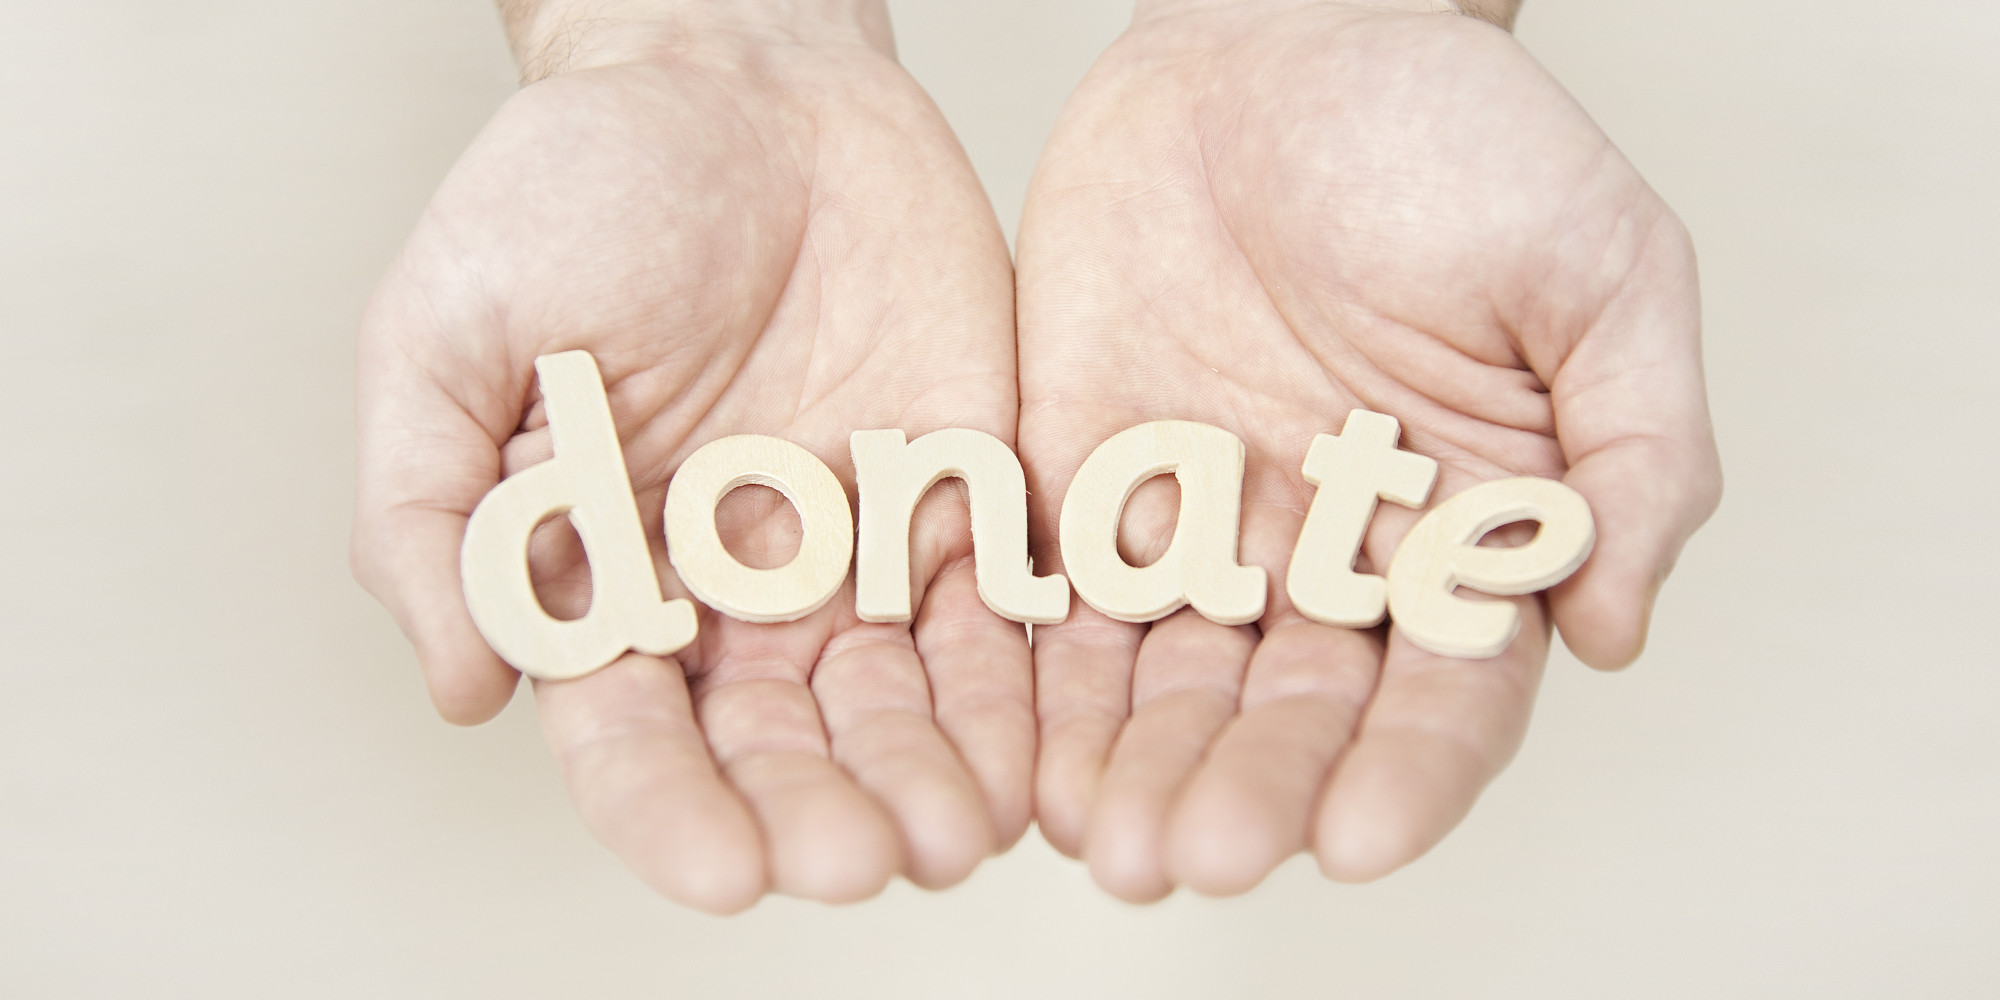 o-DONATING-TO-CHARITY-facebook.jpg